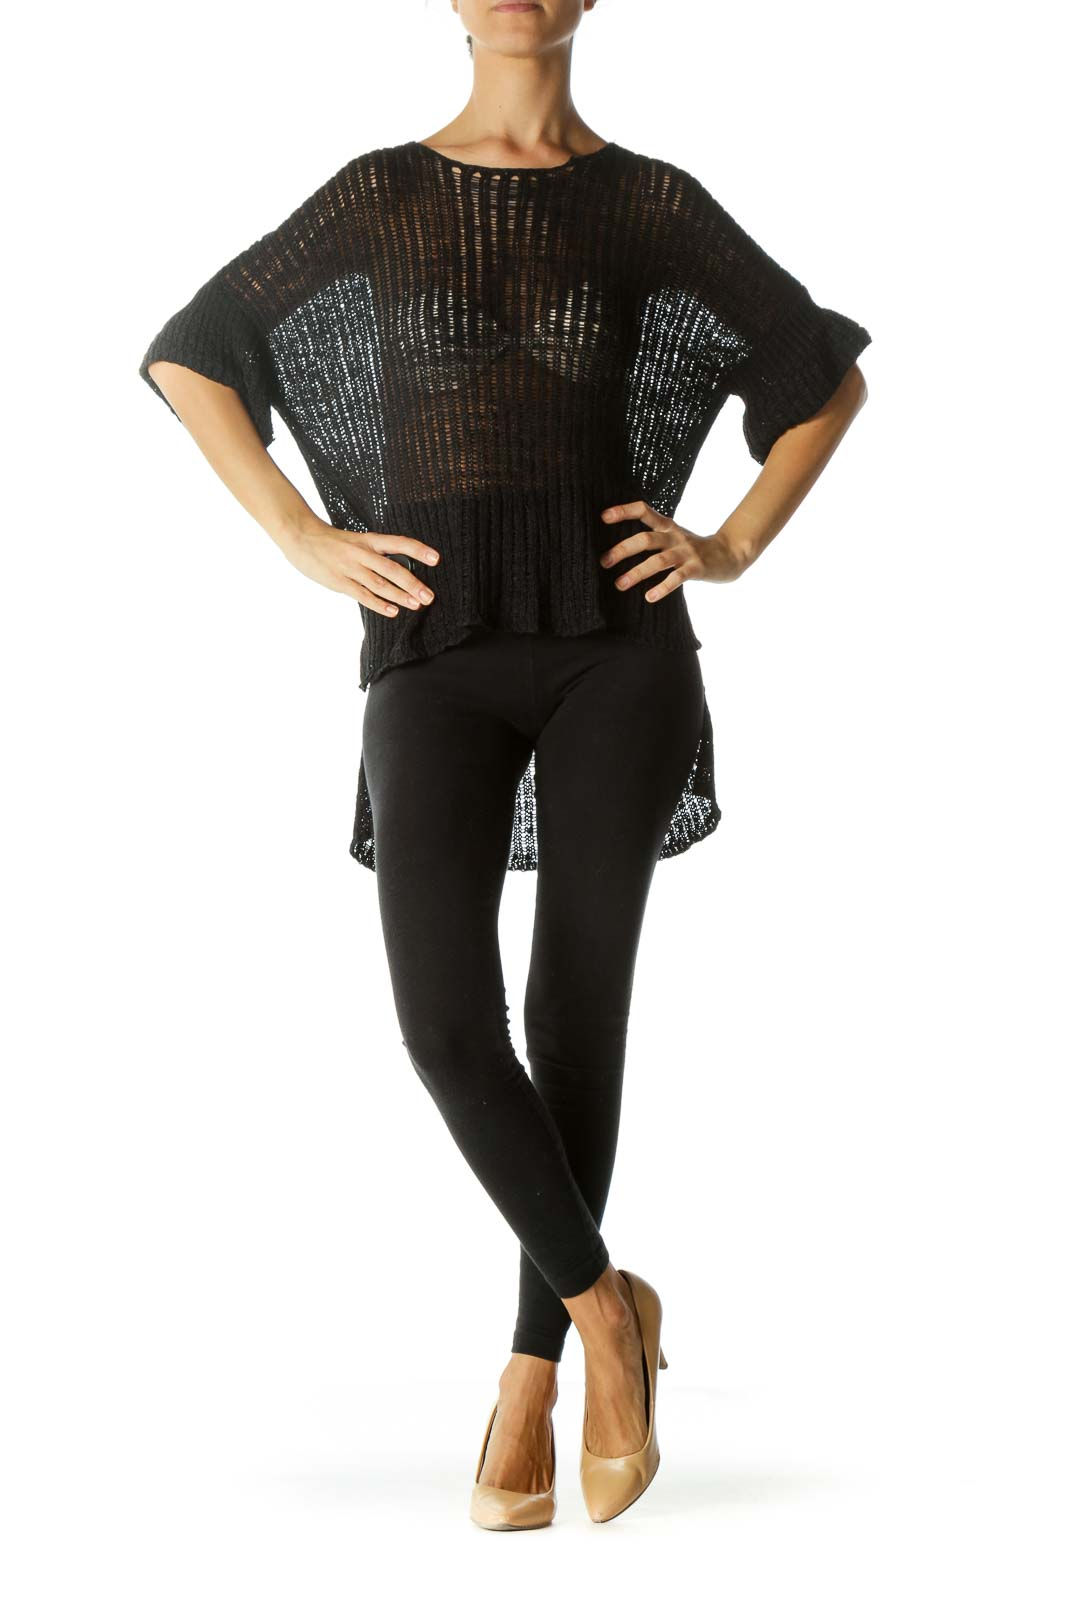 Black Knitted-Stretch Fabric Short Sleeve See-Through Top